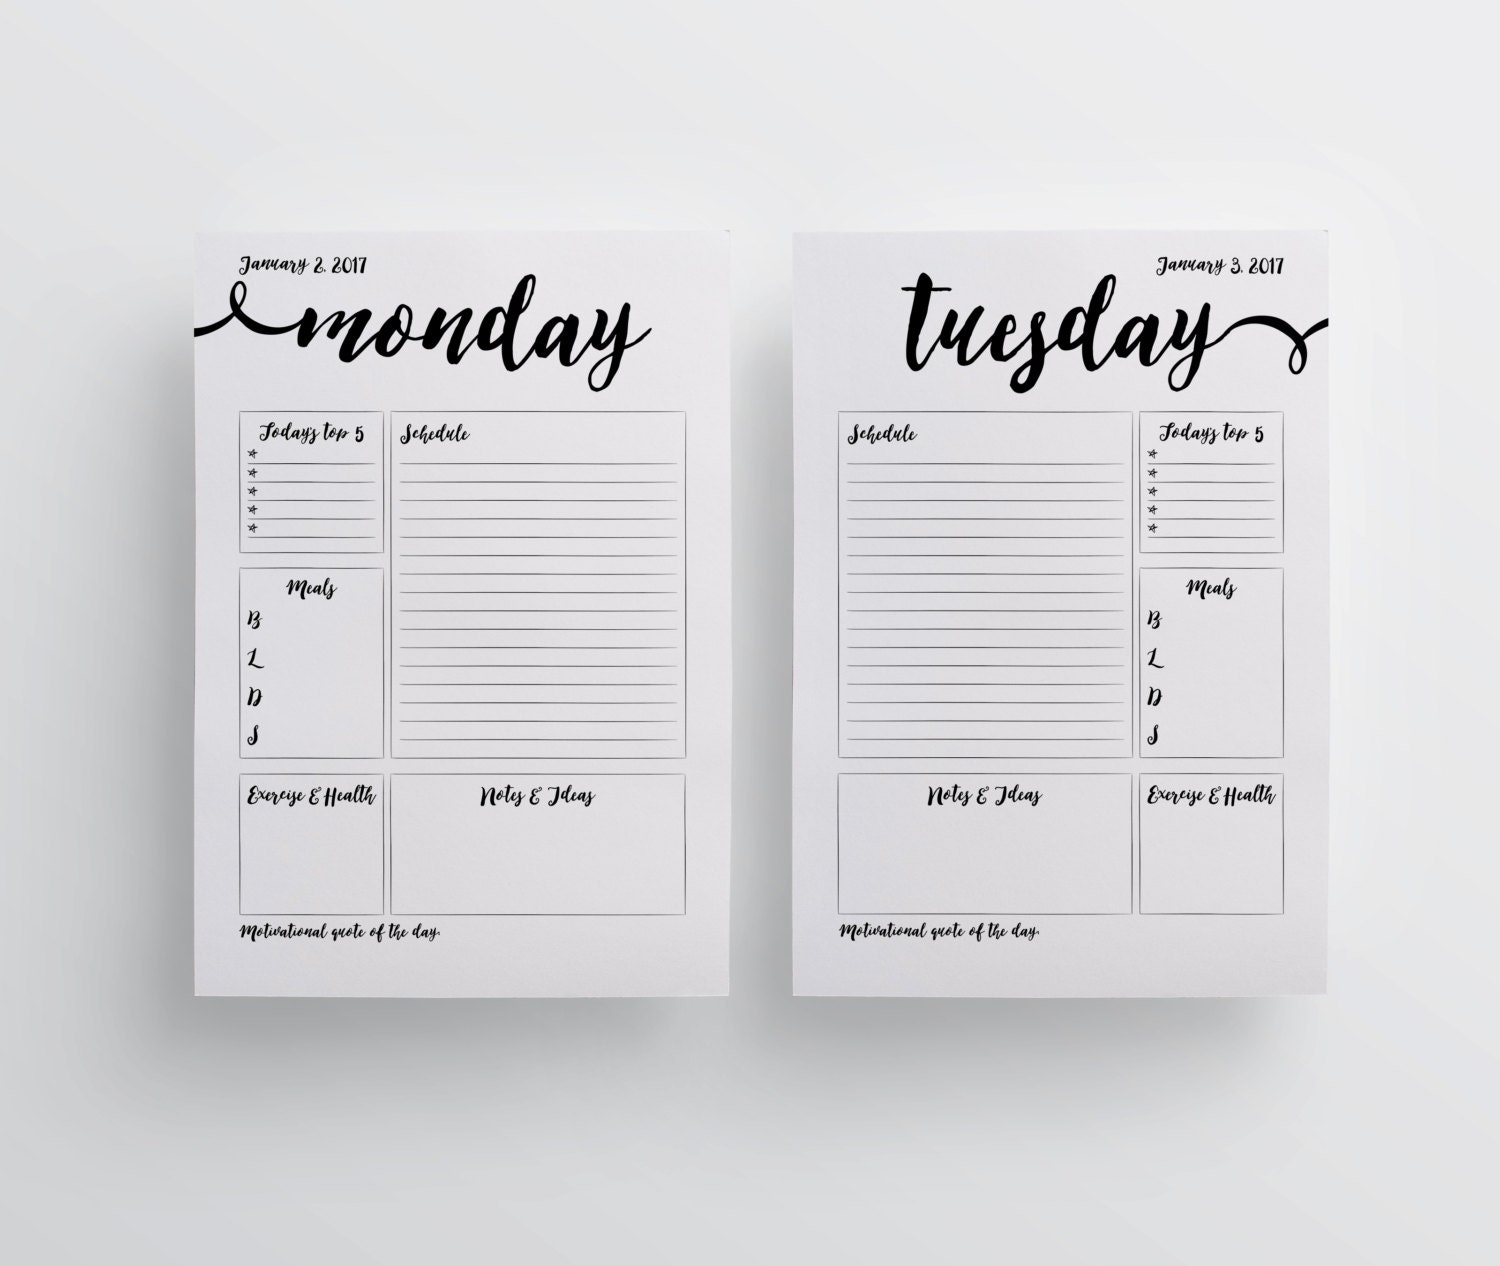 Slobbery image with regard to free a5 planner printables